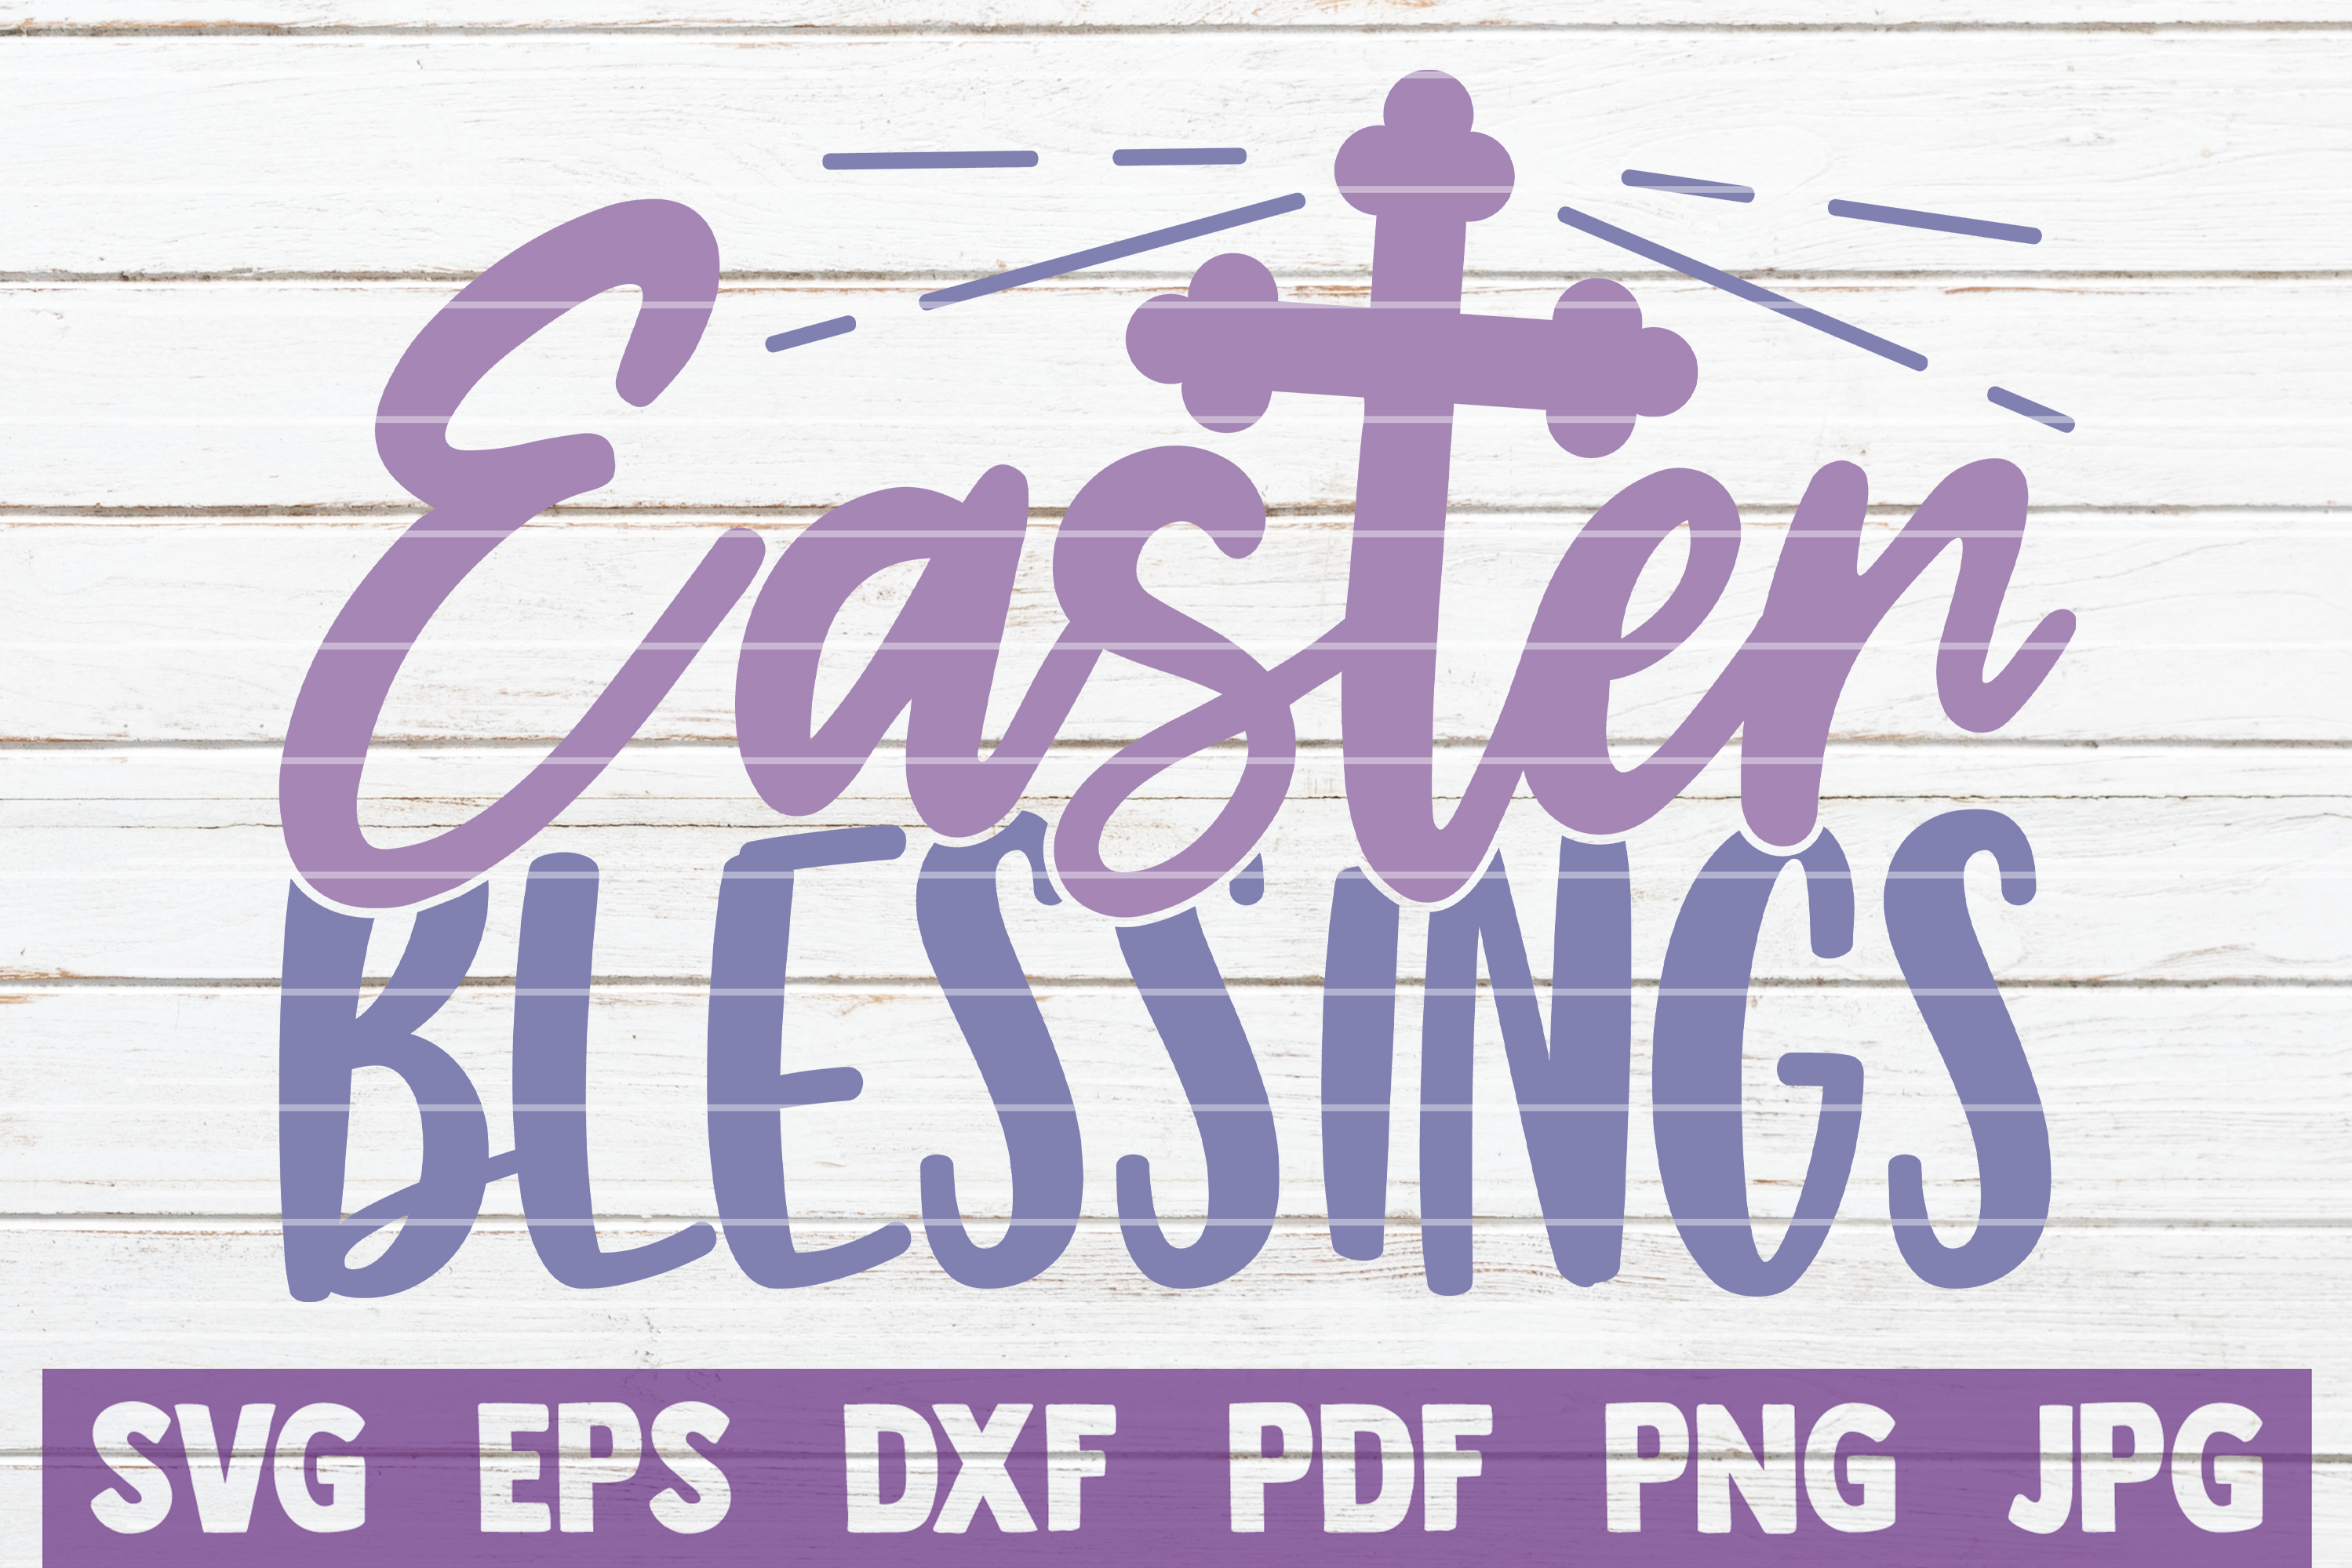 Download Free Easter Blessings Graphic By Mintymarshmallows Creative Fabrica for Cricut Explore, Silhouette and other cutting machines.